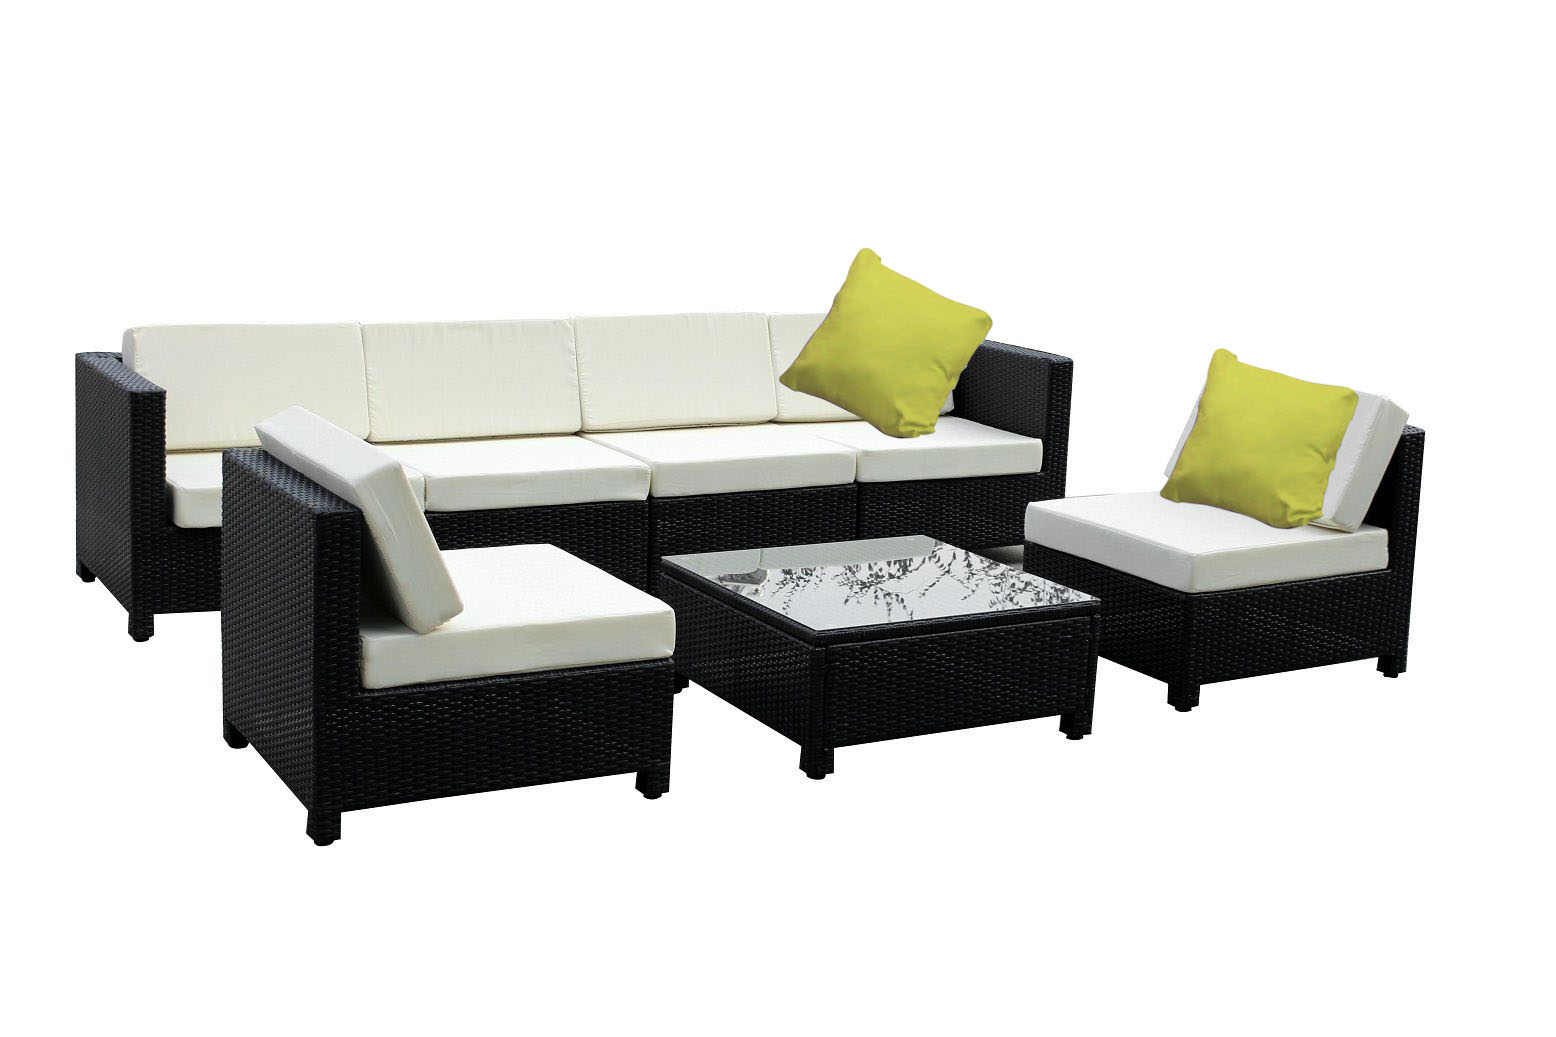 7 PC Luxury Wicker Patio Sectional Indoor Outdoor Sofa Furniture Set White Cr